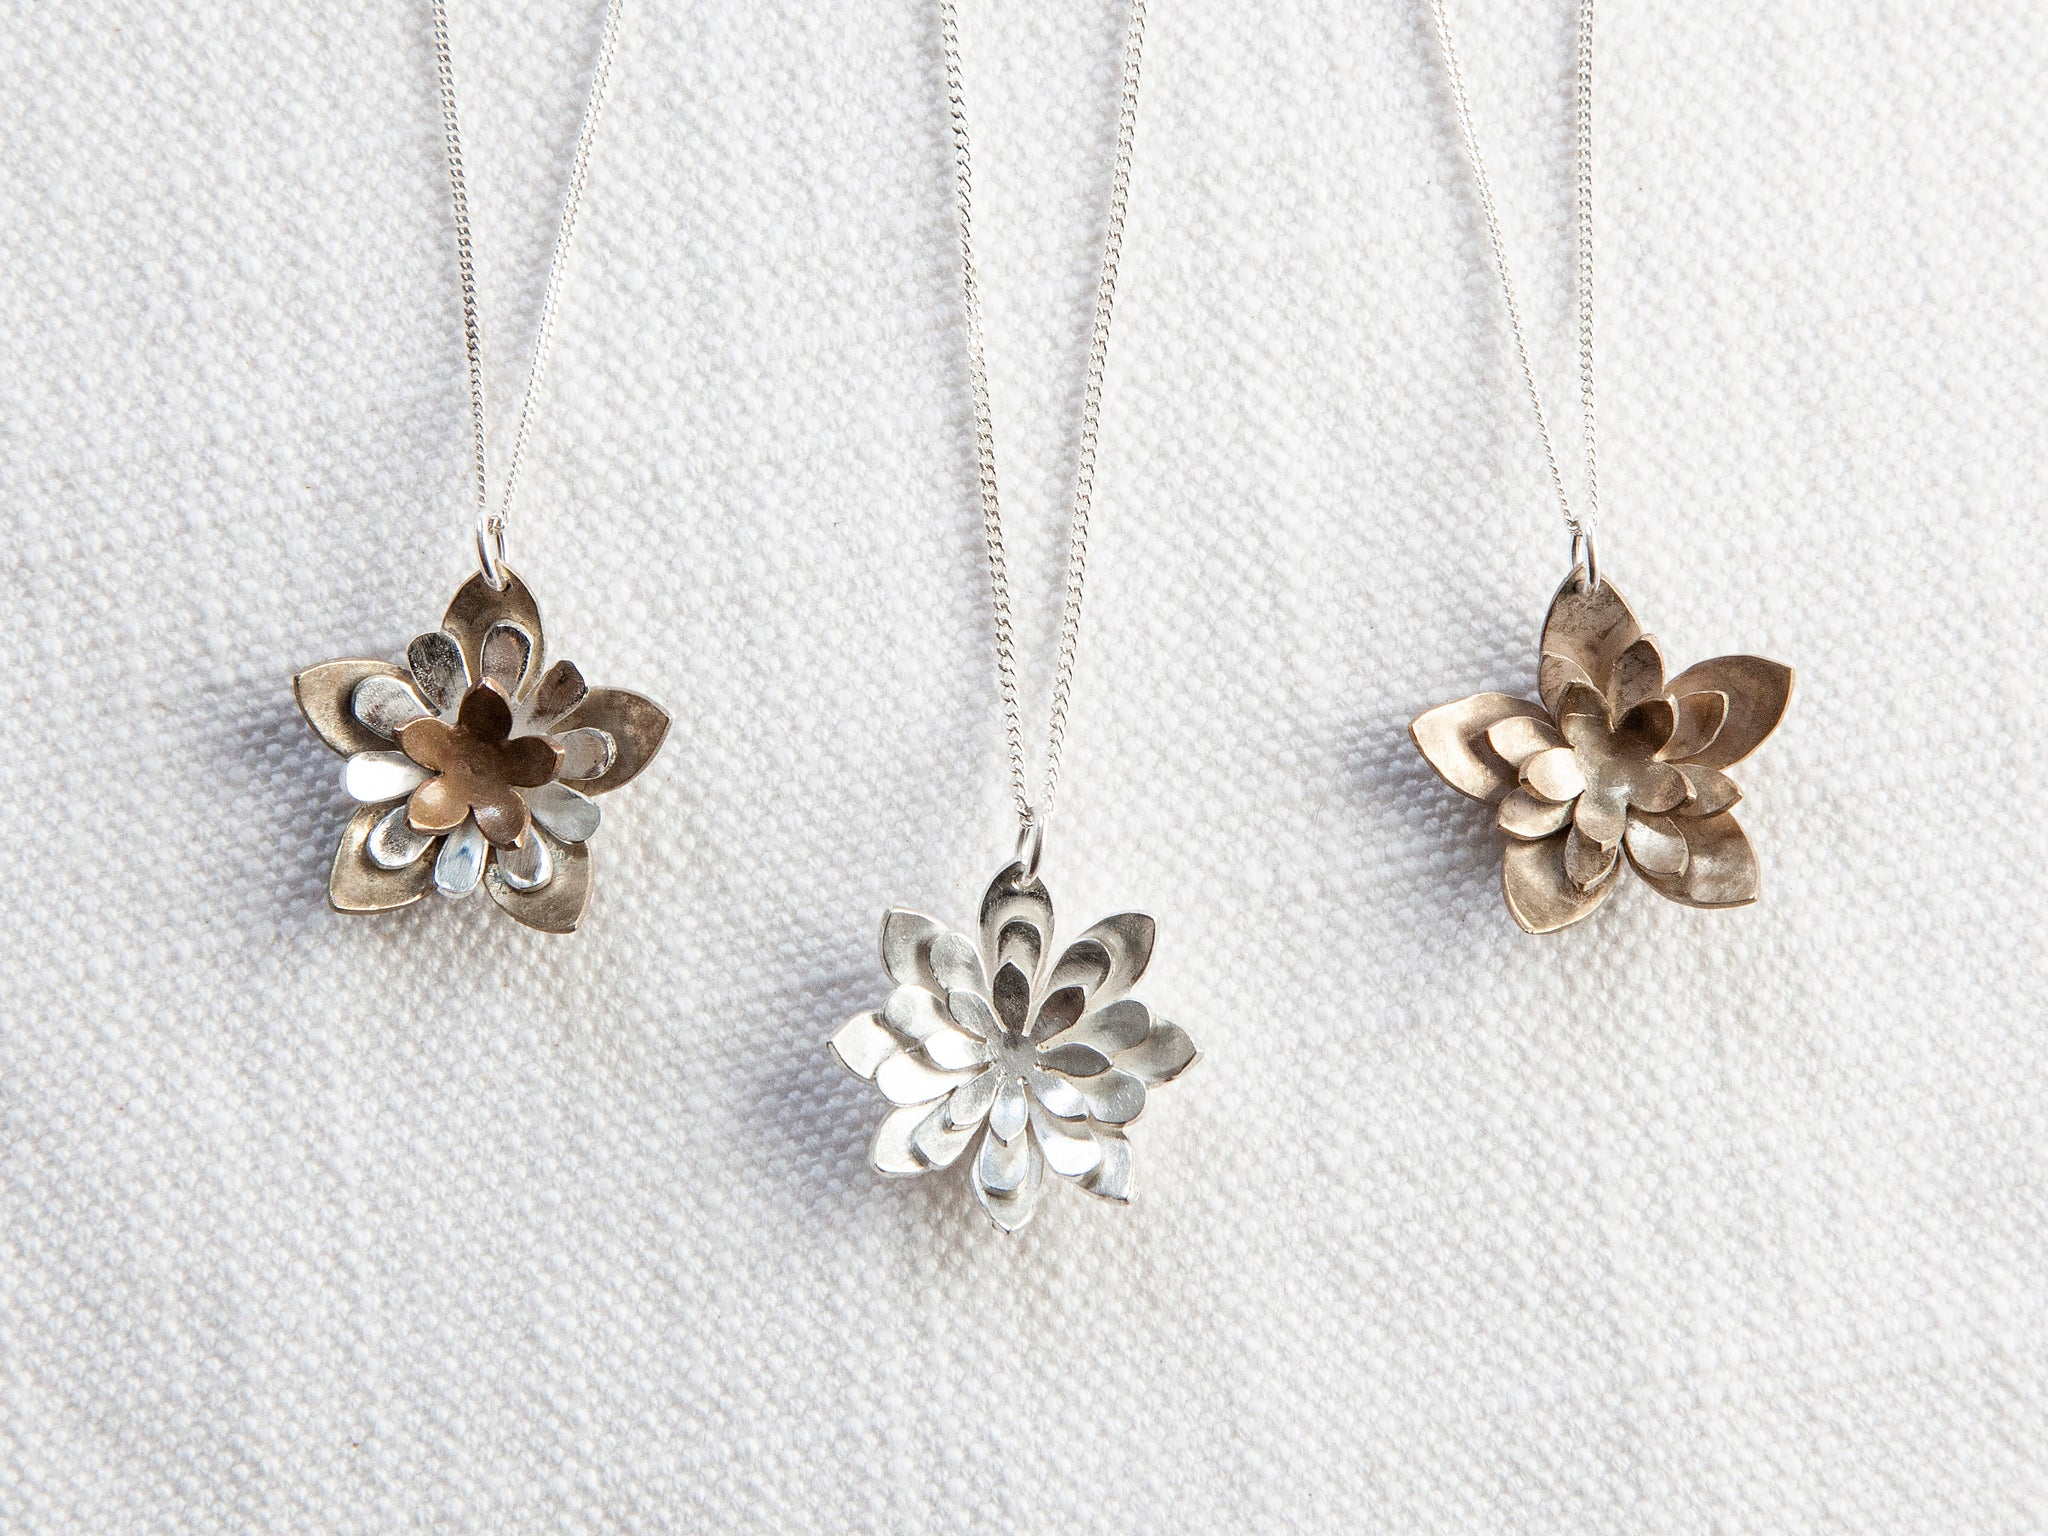 Flower Pendants